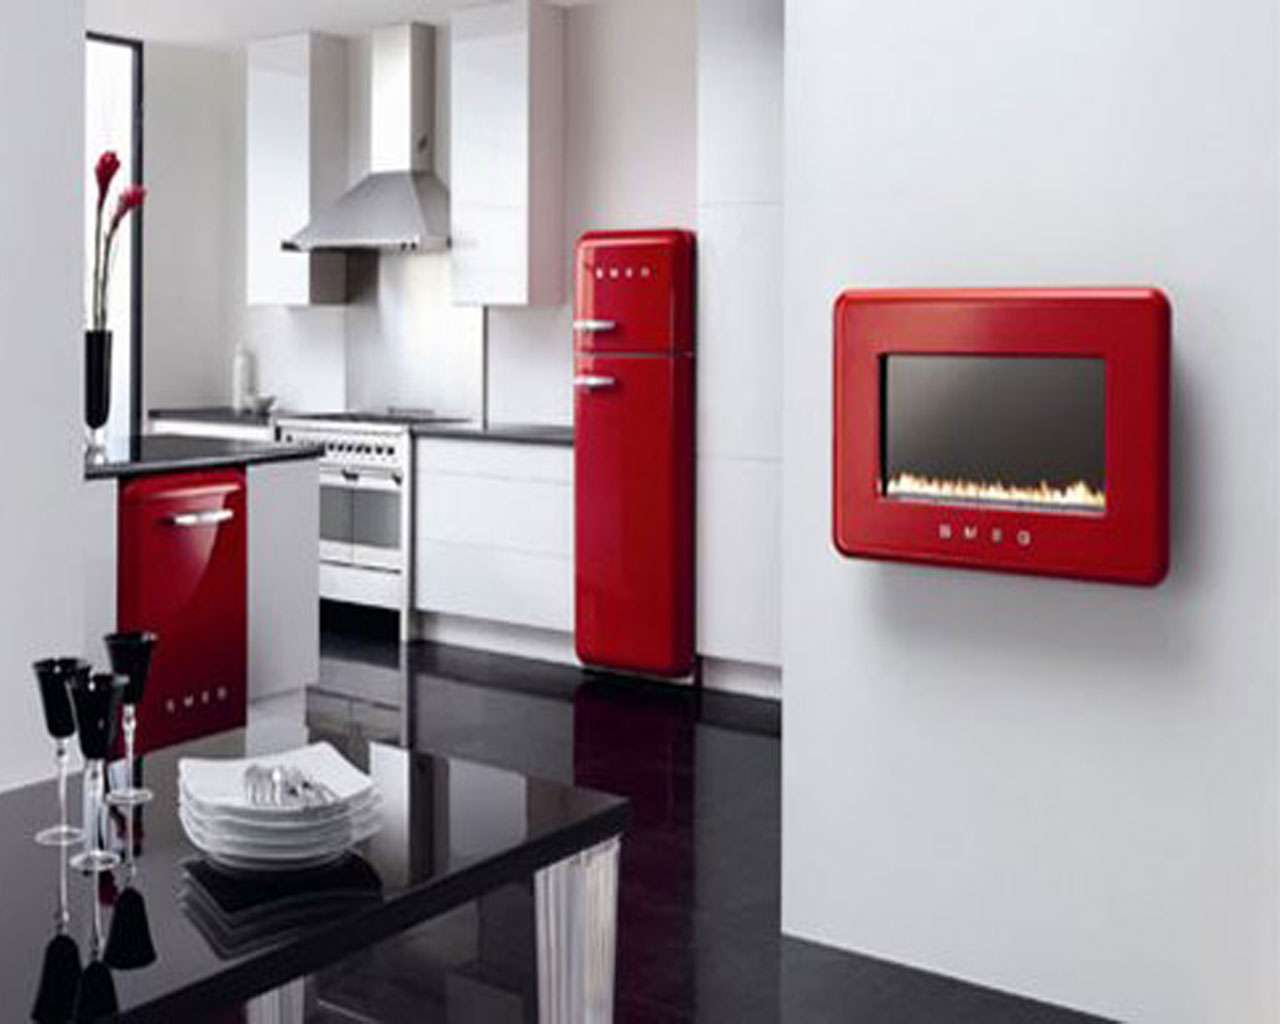 Kitchen Appliances Comments Off Red